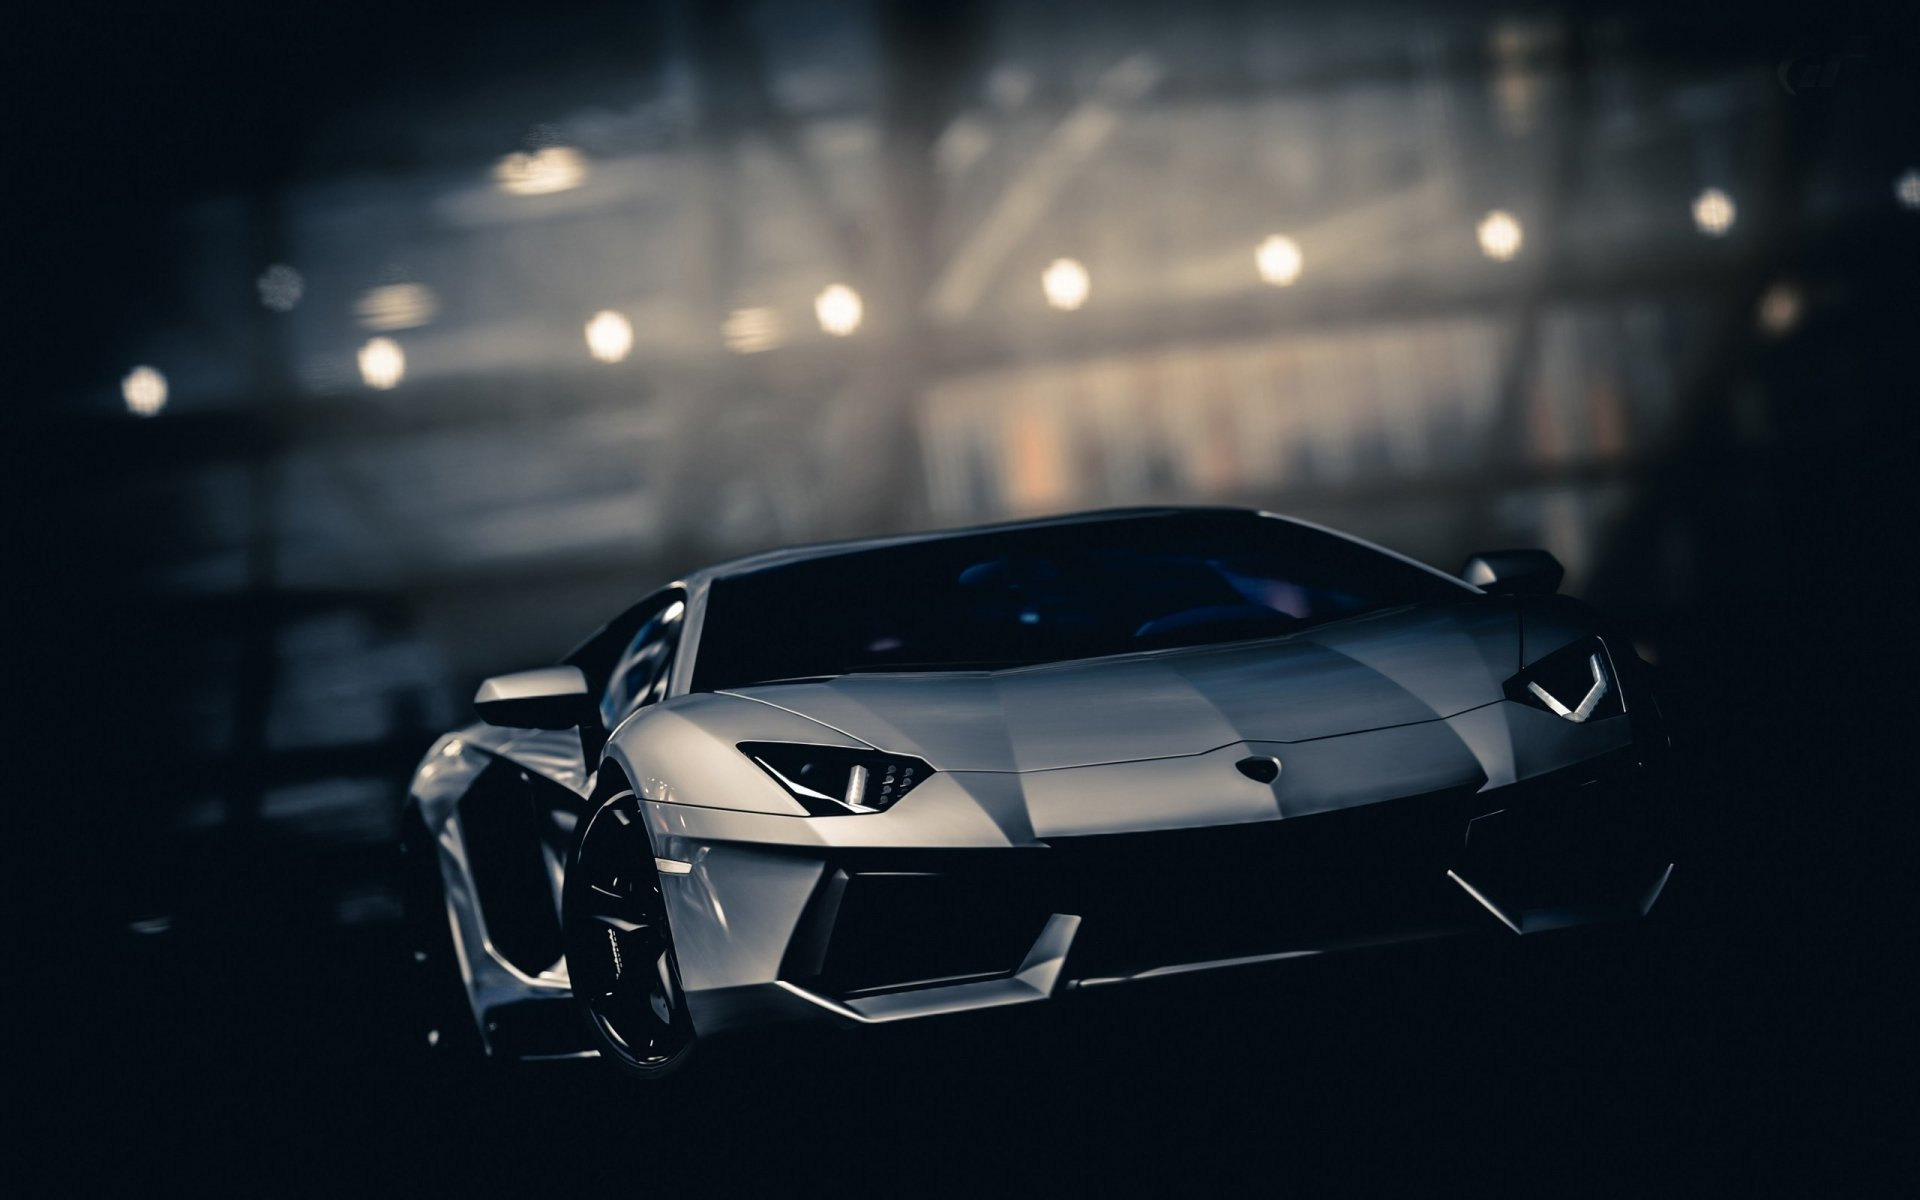 Lamborghini Aventador black wallpaper in Cars   Vehicles wallpapers 1920x1200